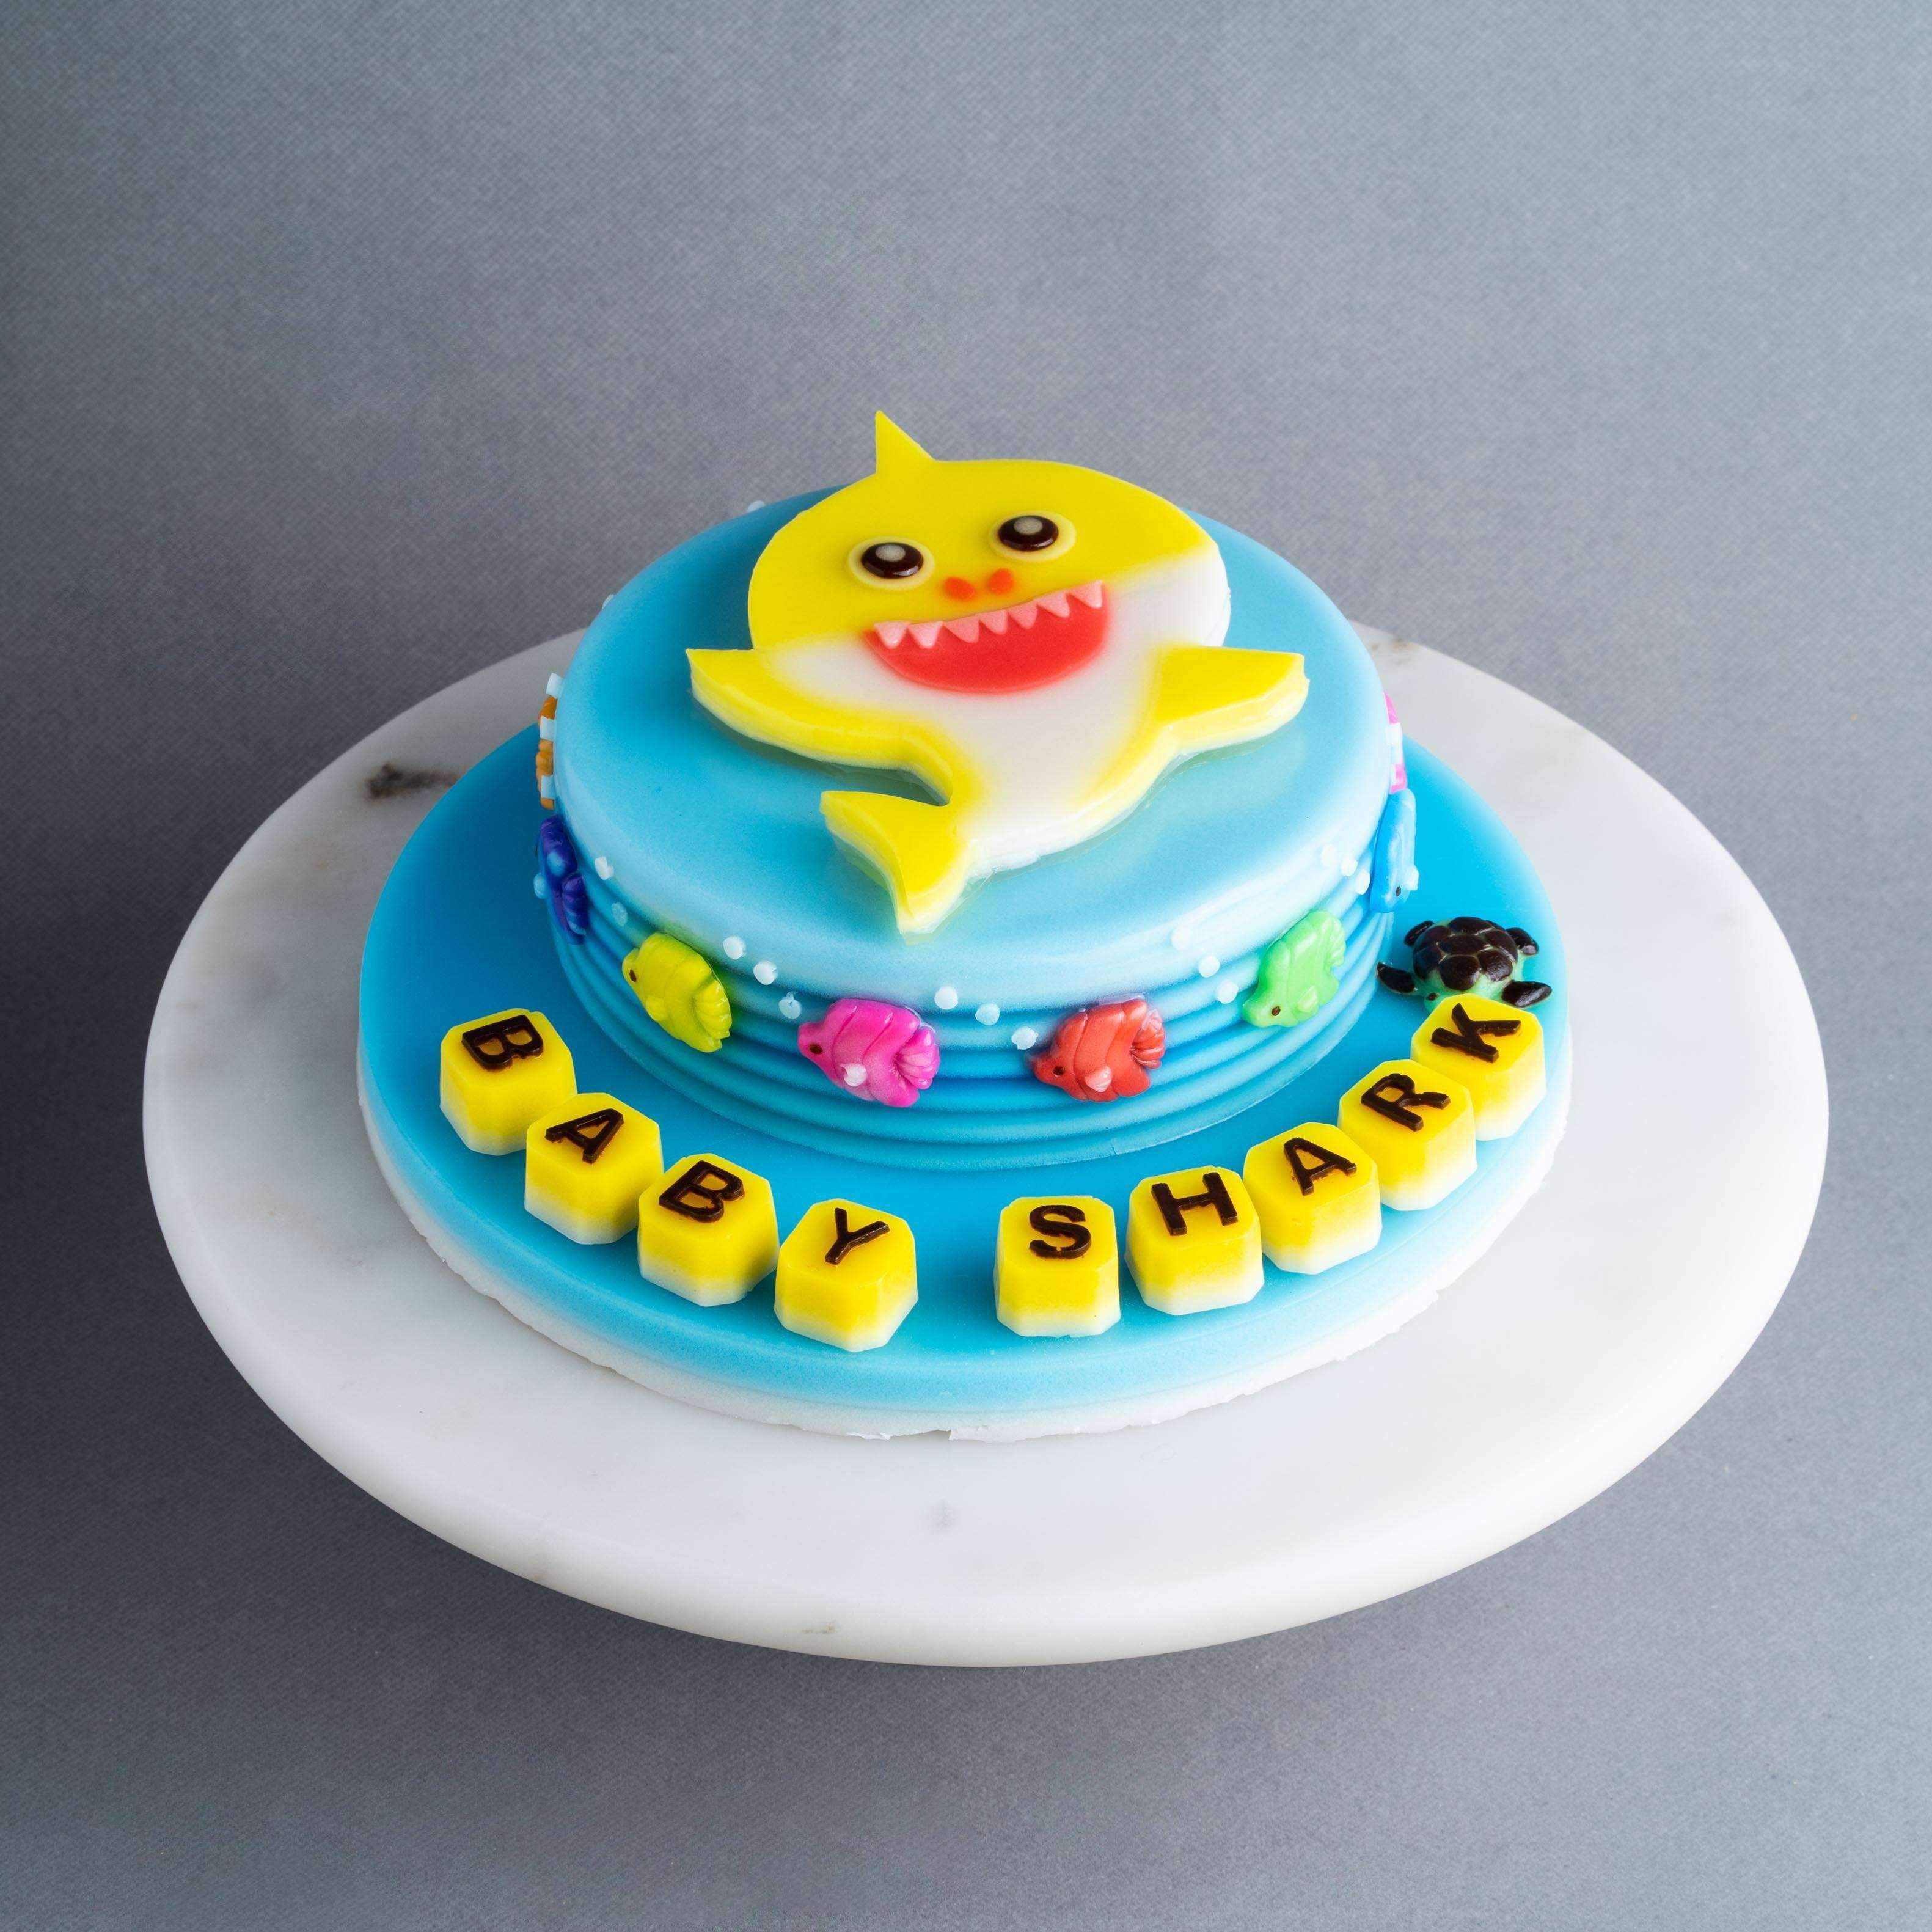 Superb Baby Shark Jelly Cake 8 Eat Cake Today Birthday Cake Delivery Birthday Cards Printable Giouspongecafe Filternl